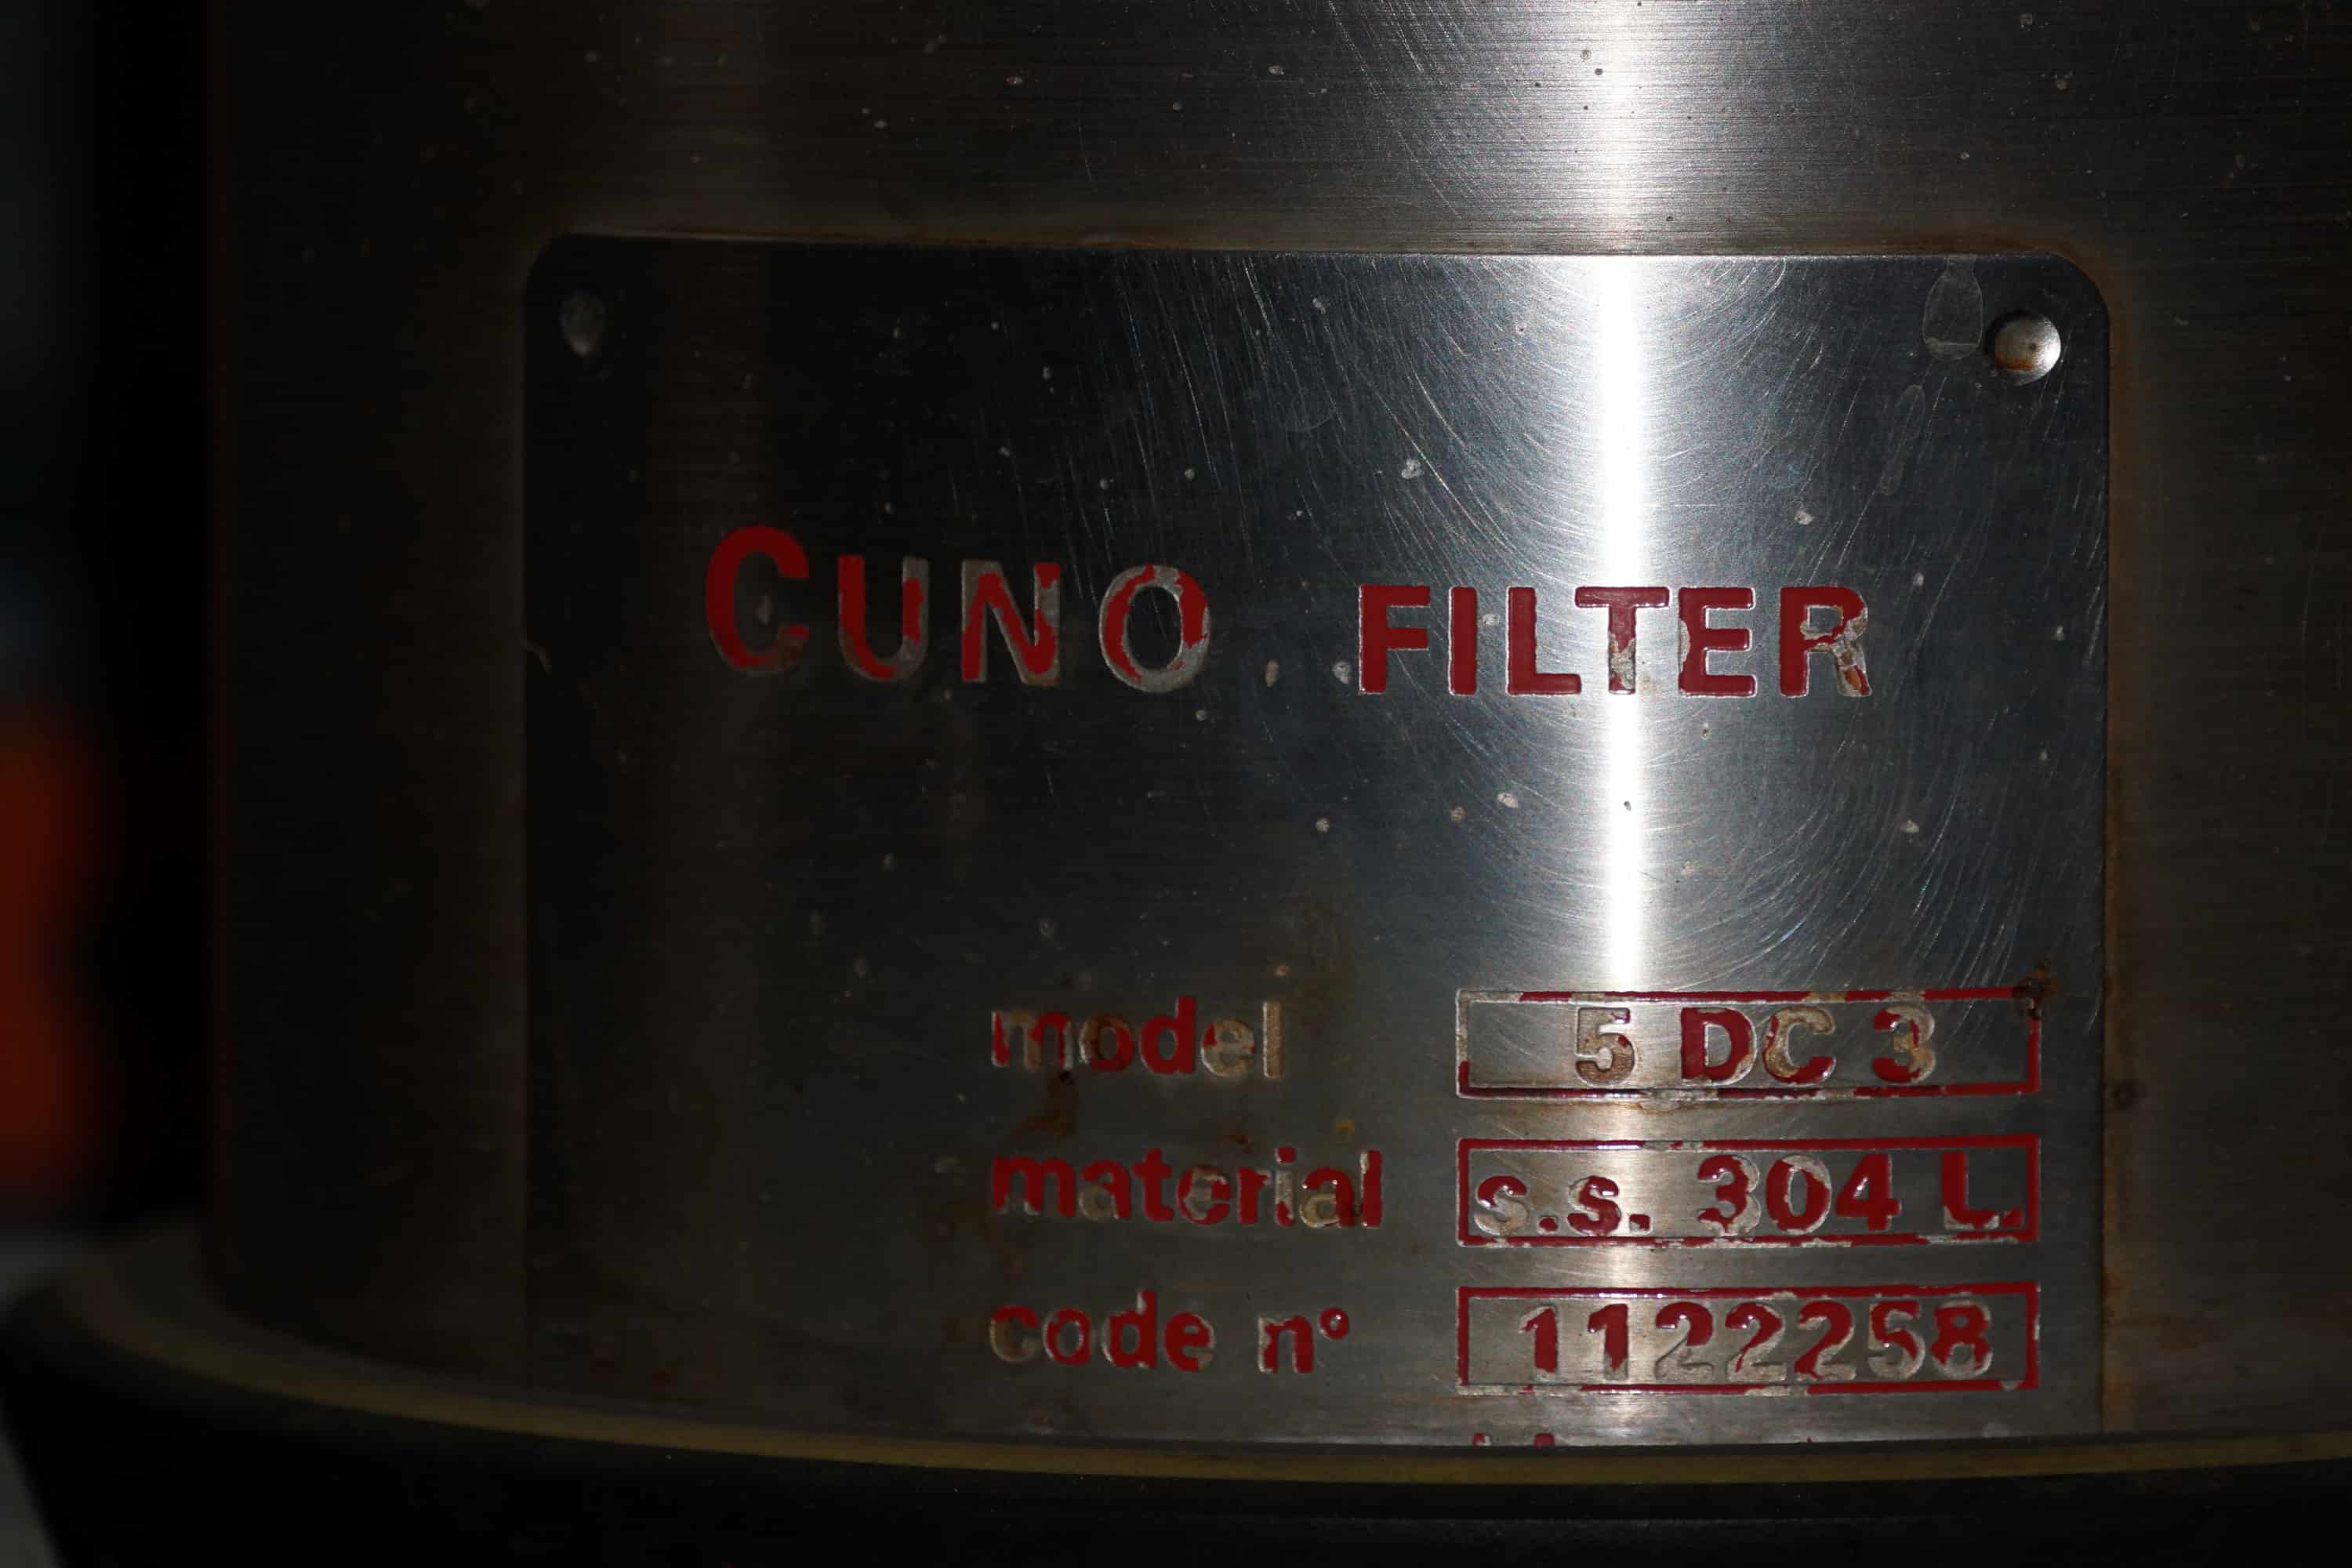 Hager+Elsasser Reverse Osmosis (needs new filters) , Model 5 DC3, Y.O.M 1994